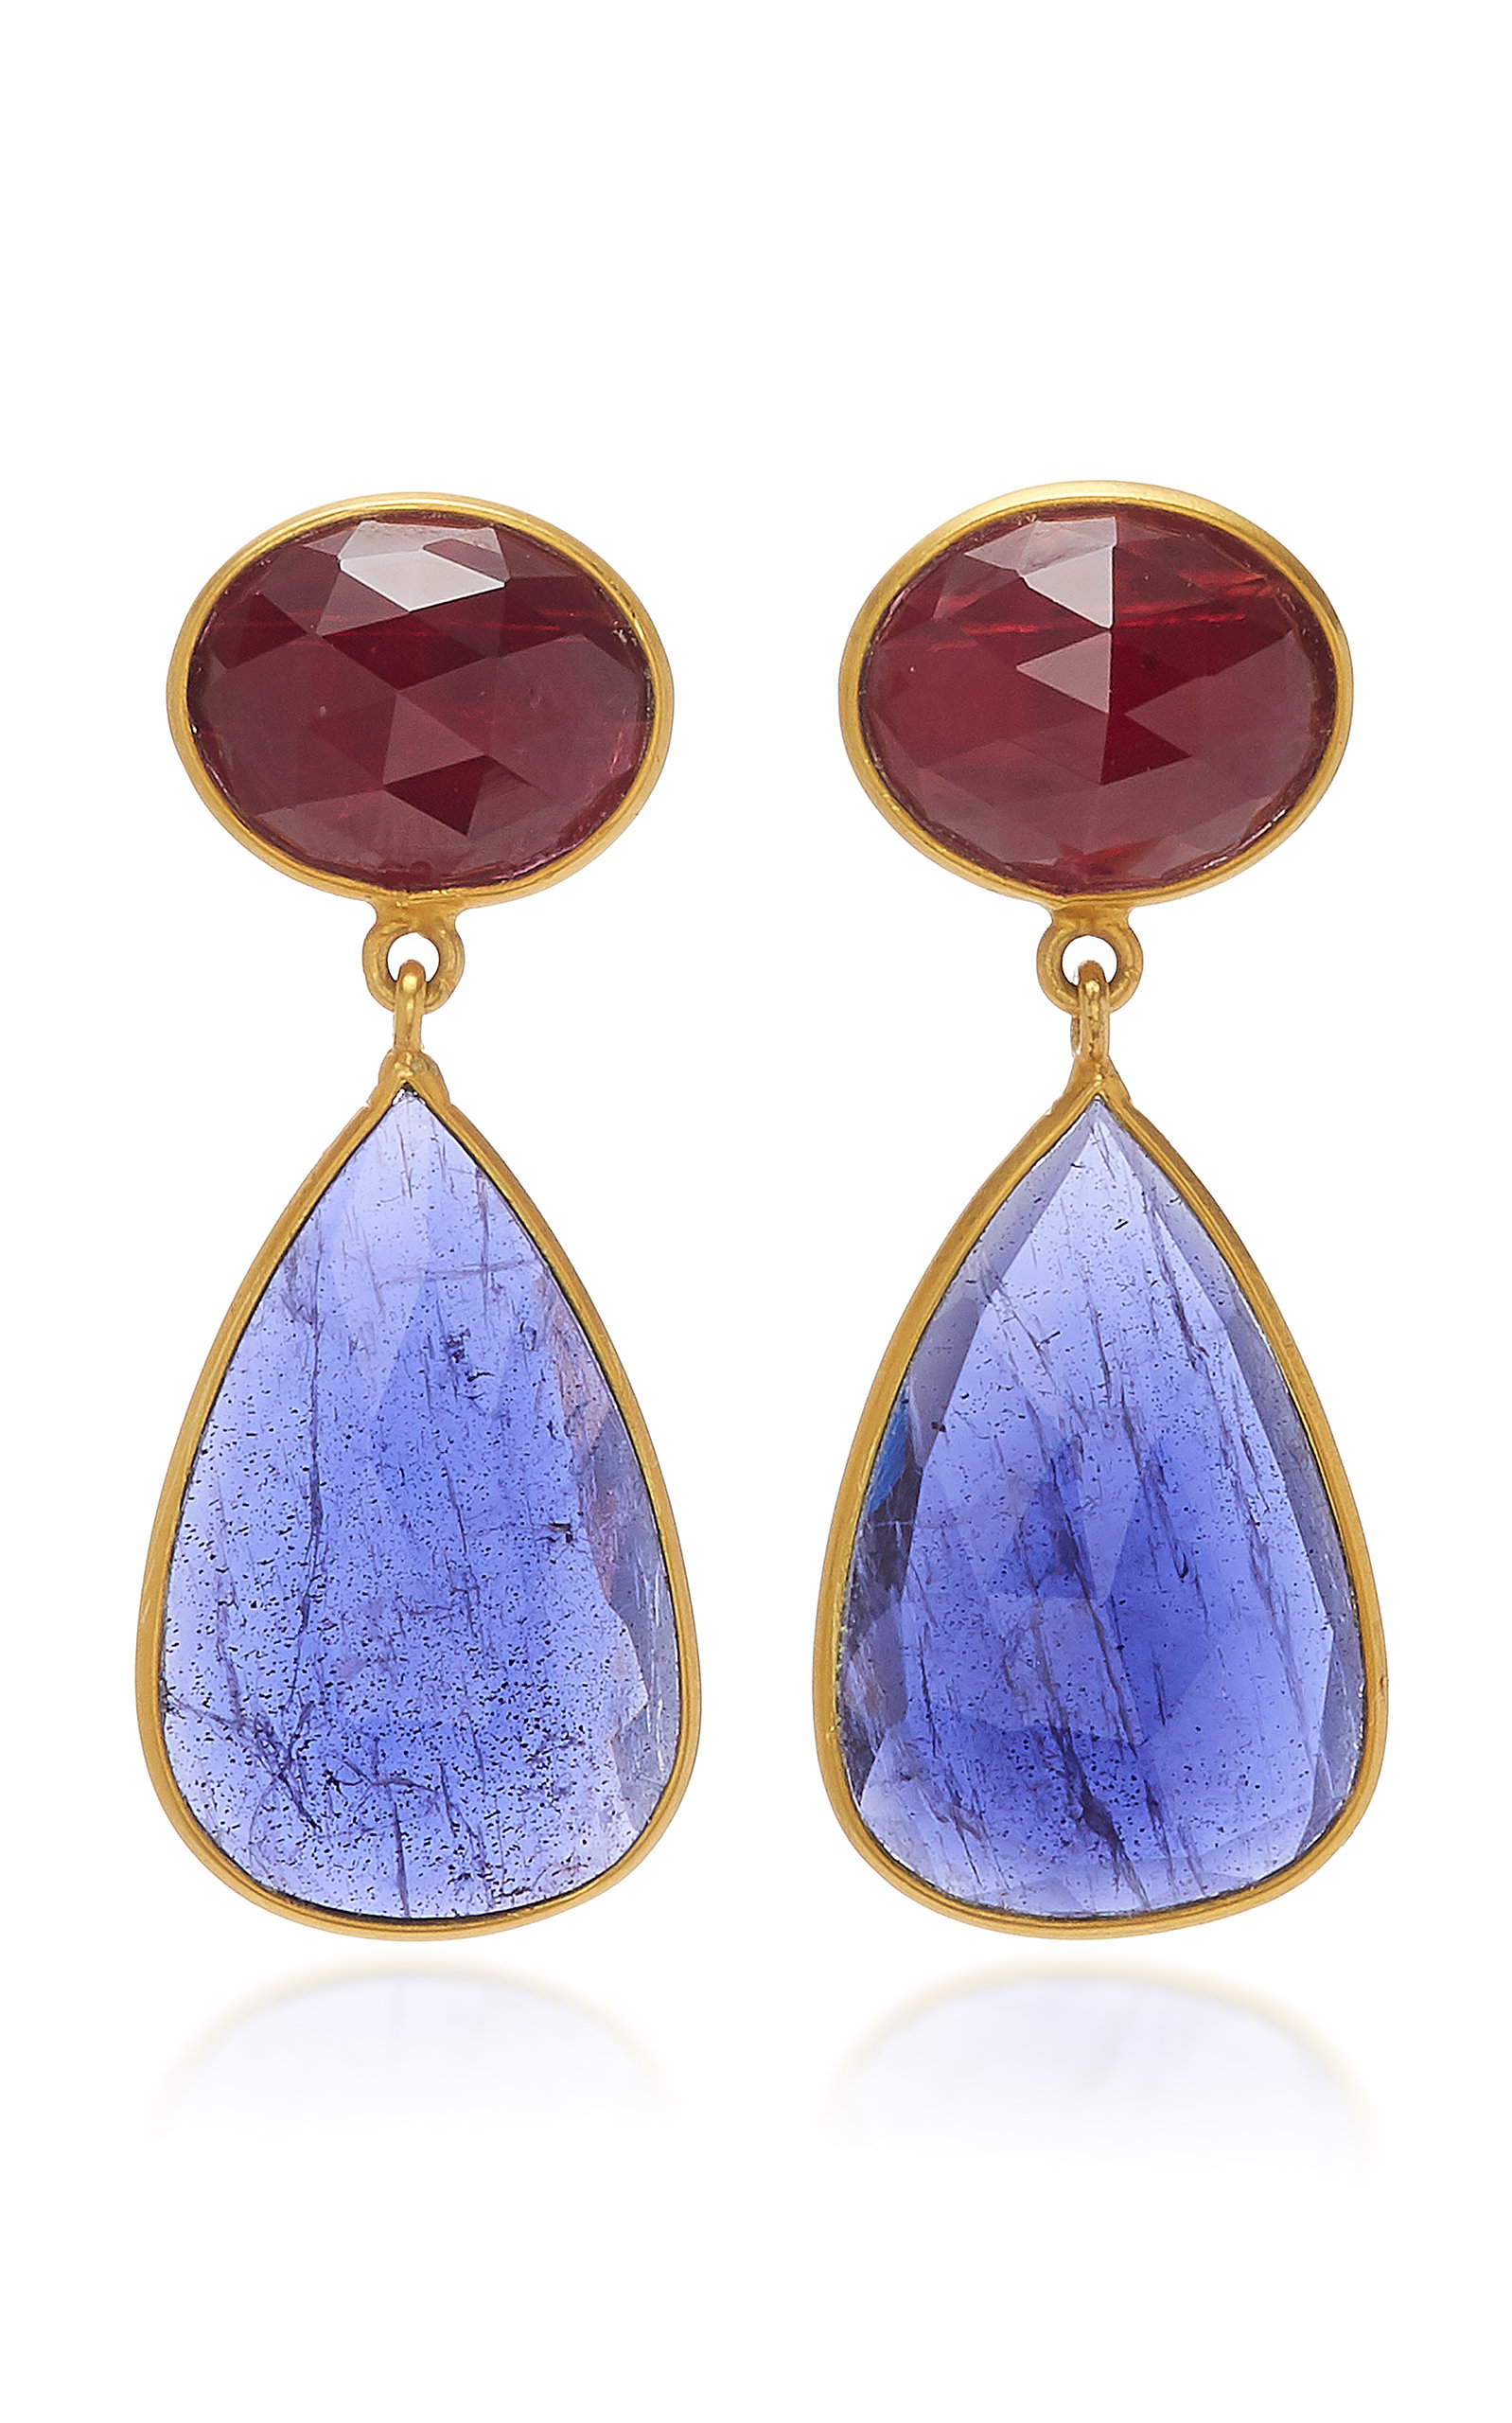 BAHINA 18K Gold Ruby And Iolith Earrings in Blue